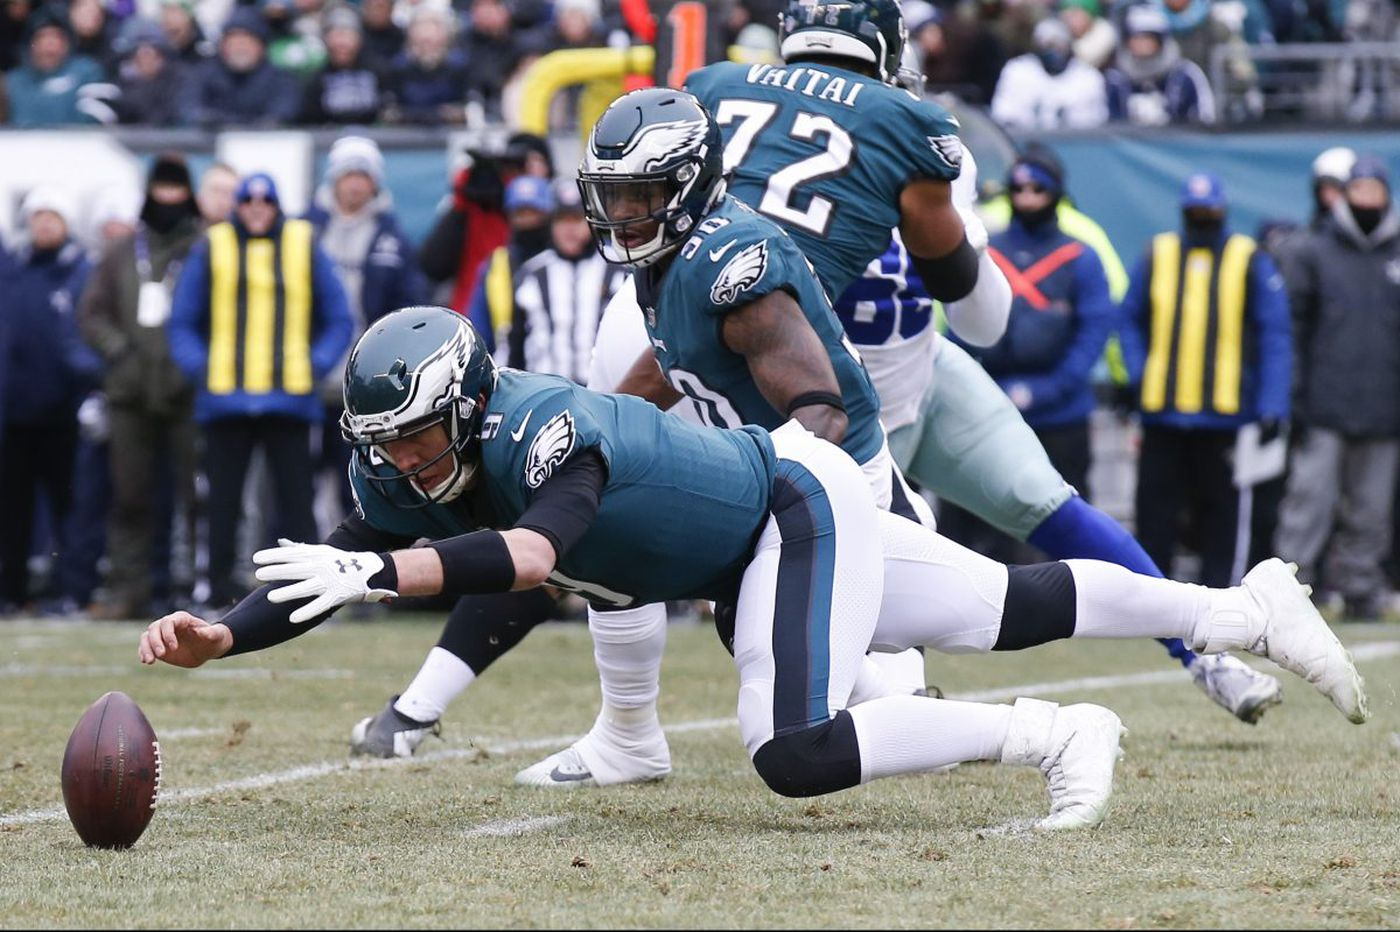 Eagles QB Nick Foles doesn't look as confident as he says he is | What We Learned